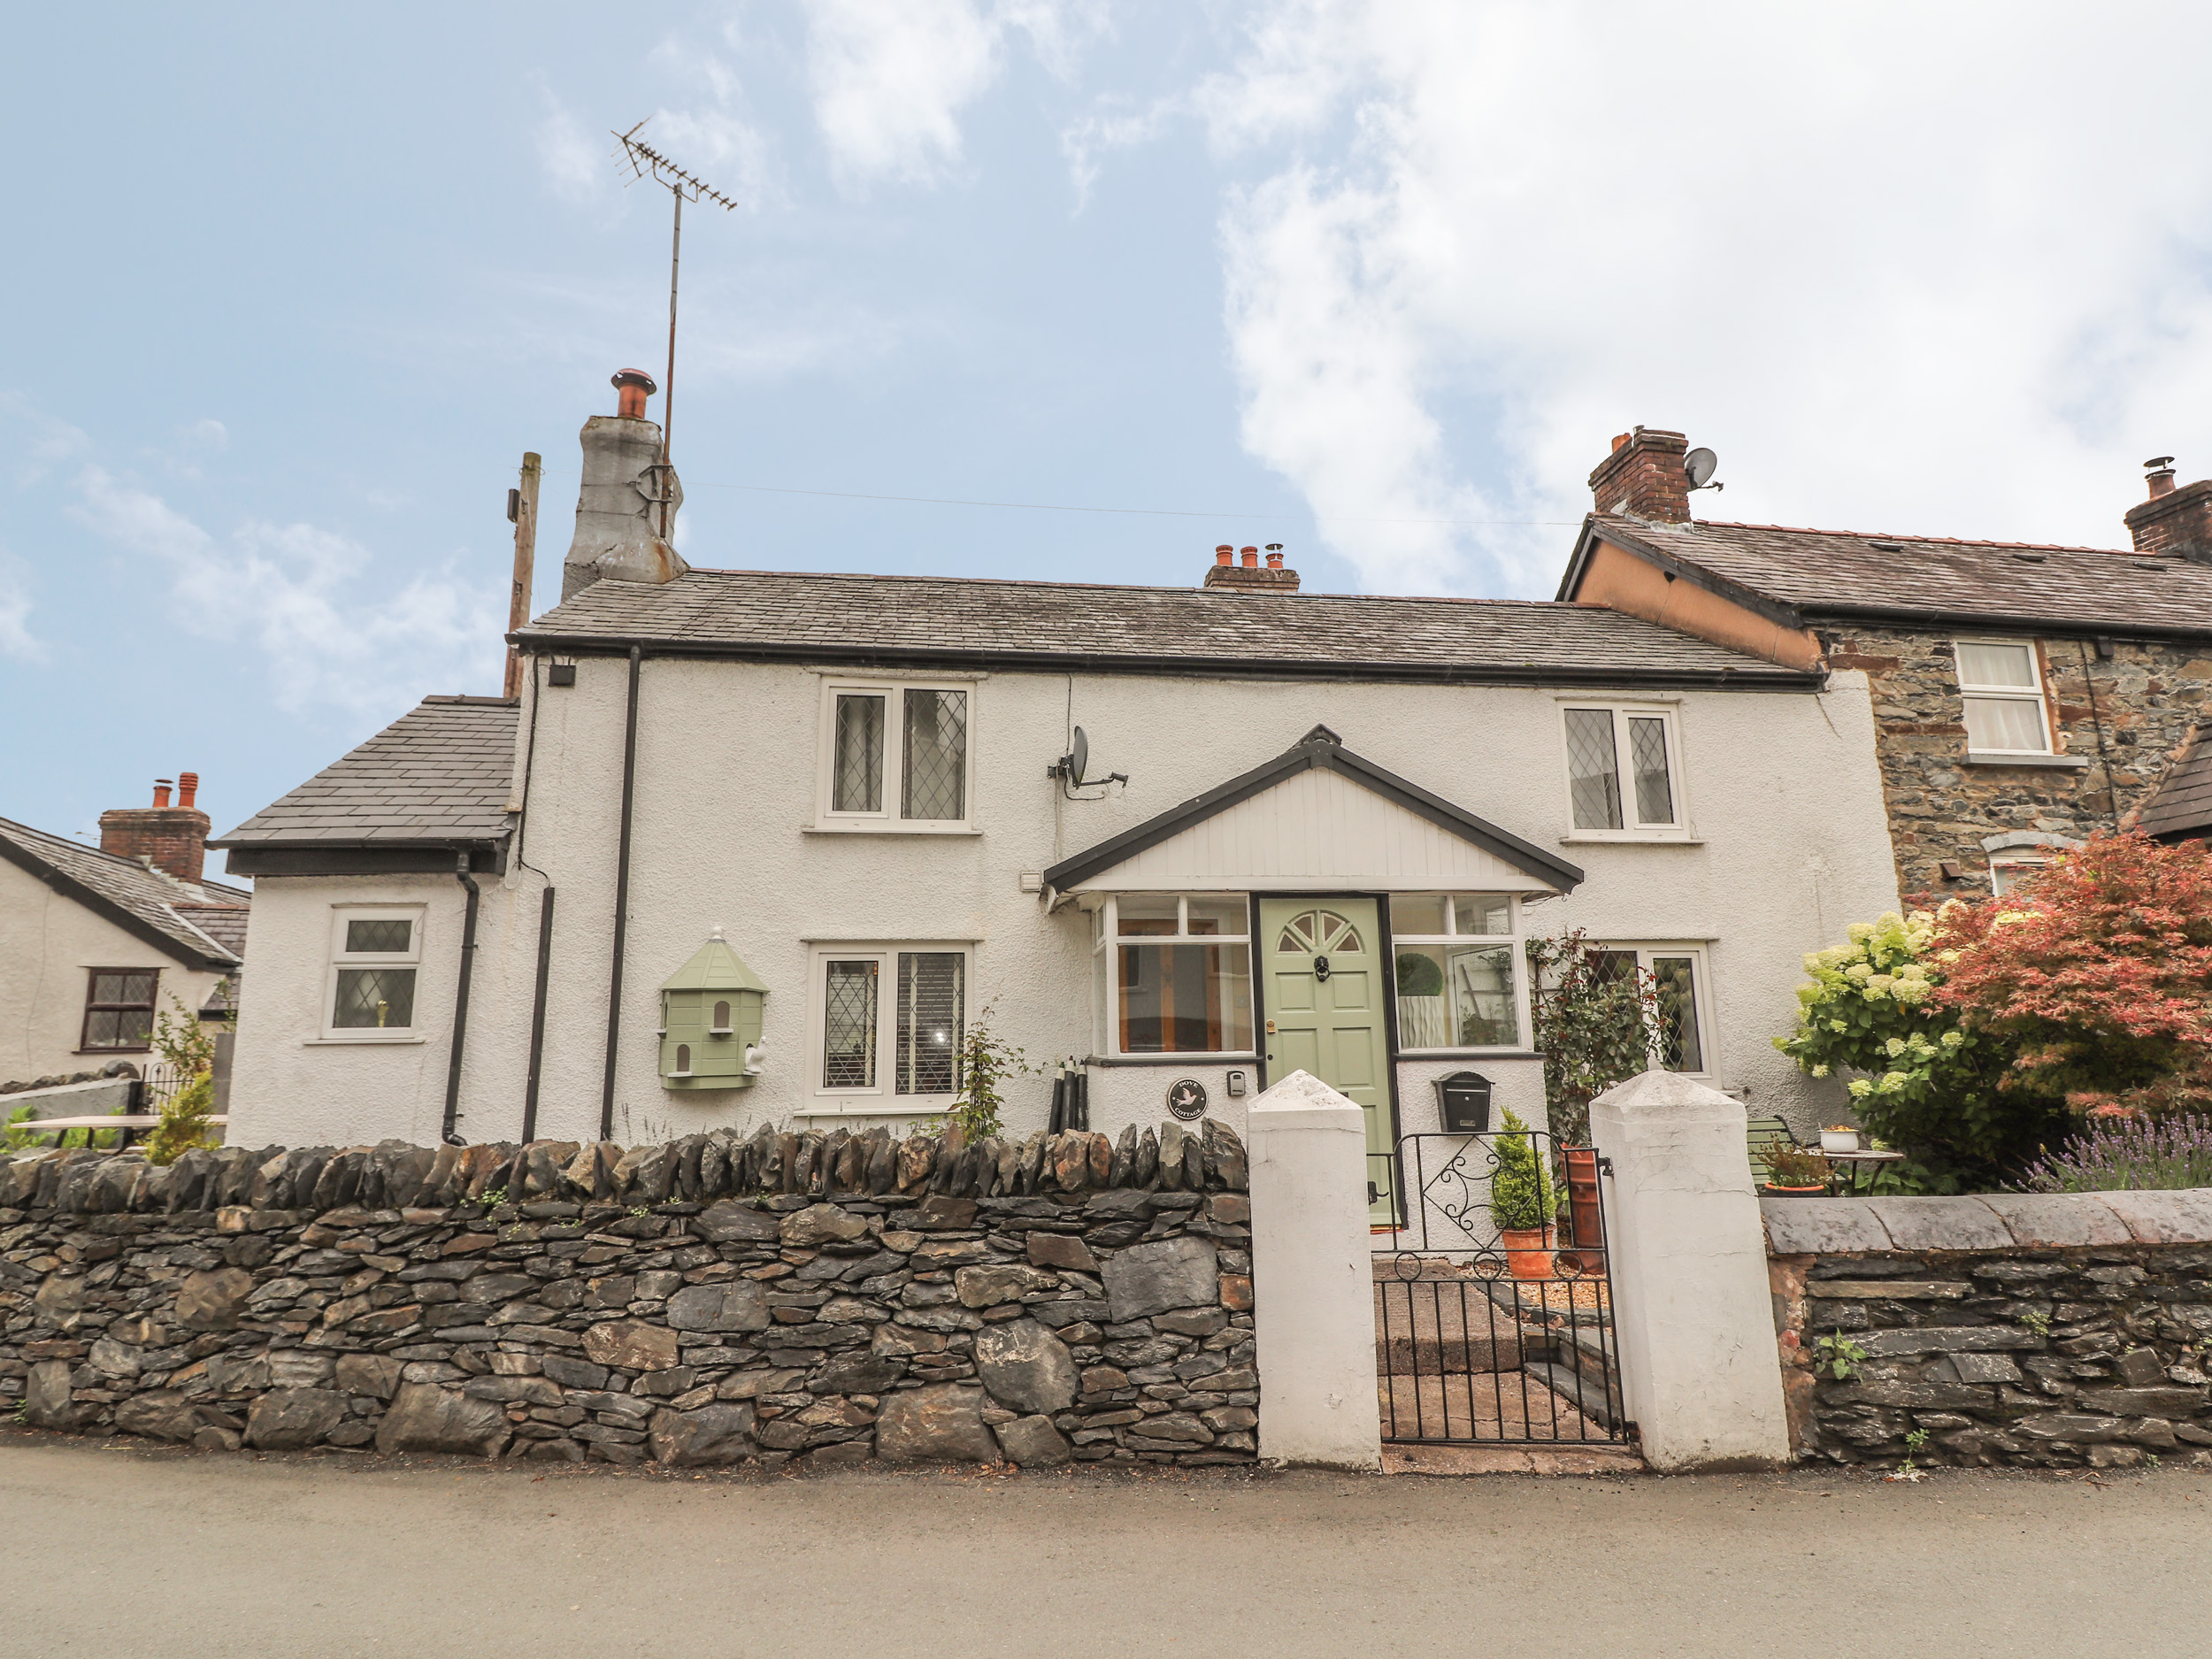 2 bedroom Cottage for rent in Llanfair Talhaiarn